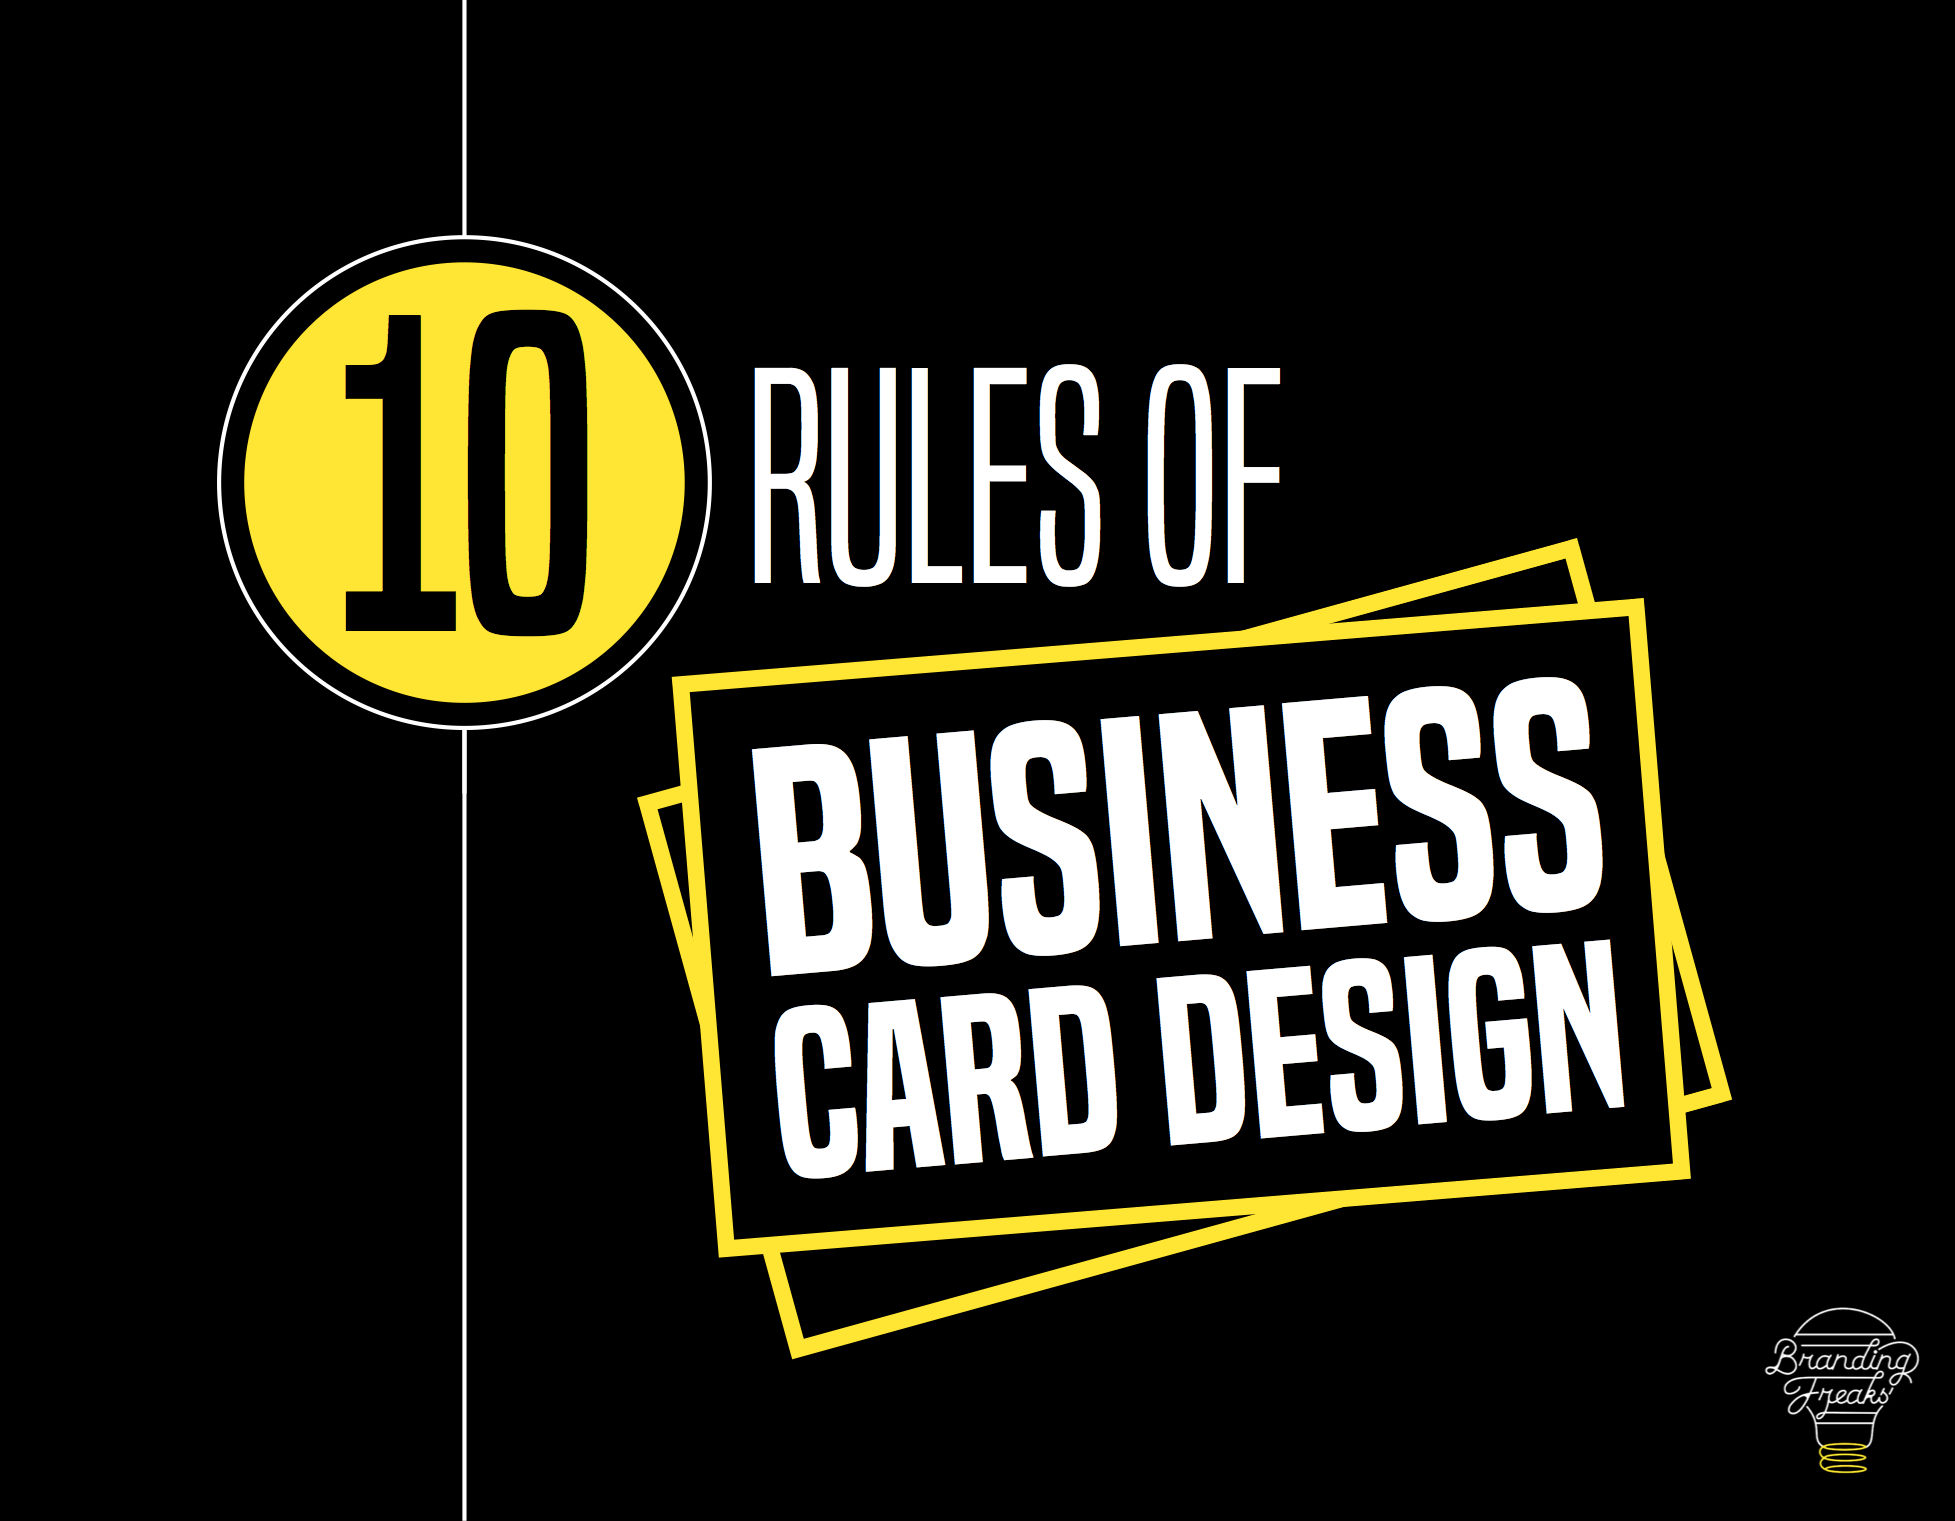 10 Rules of Business Card Design